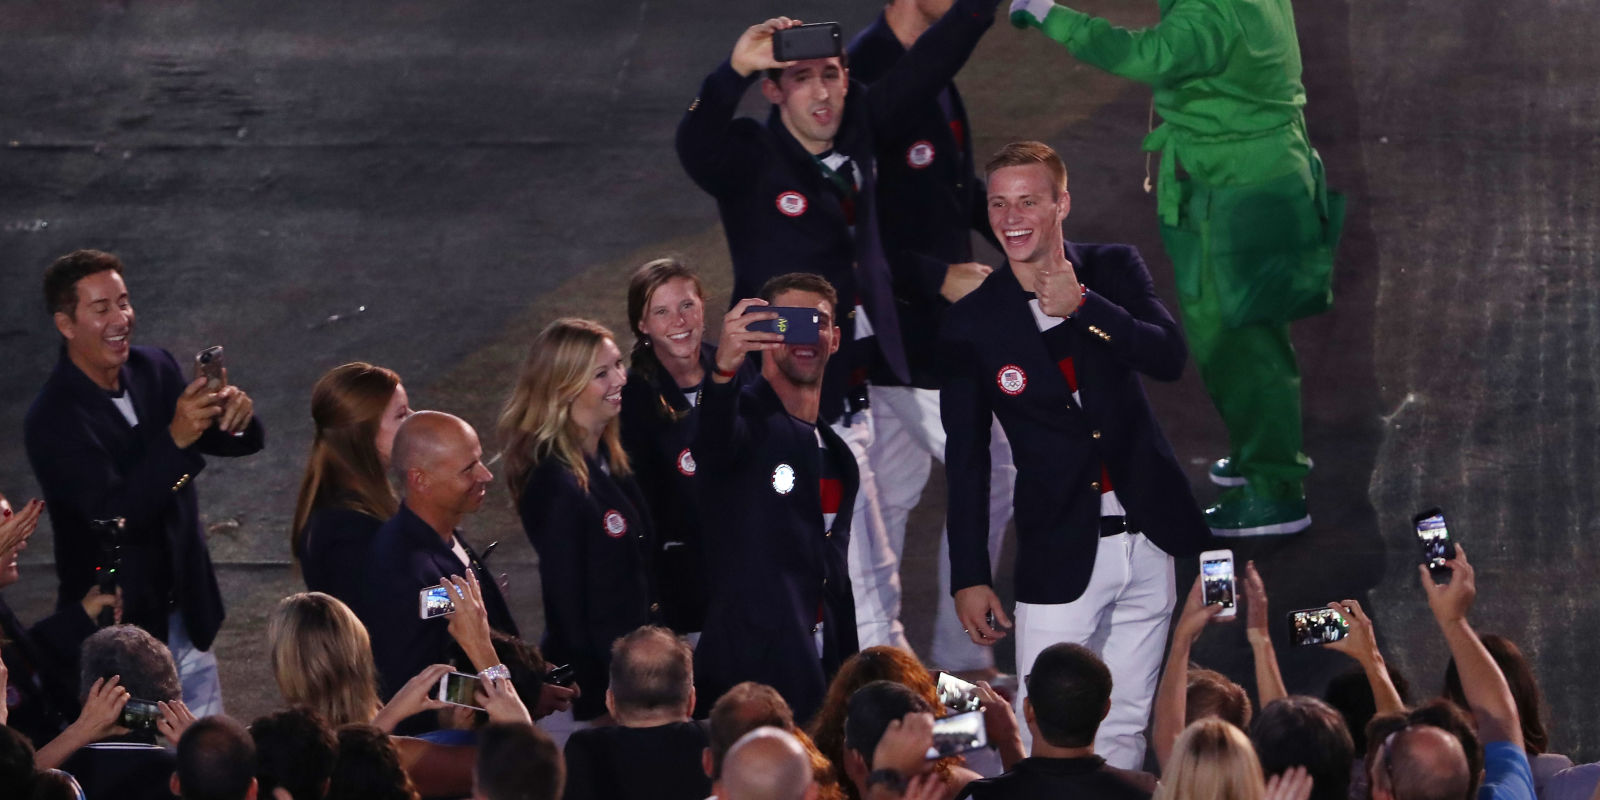 athletes hook up in olympic village